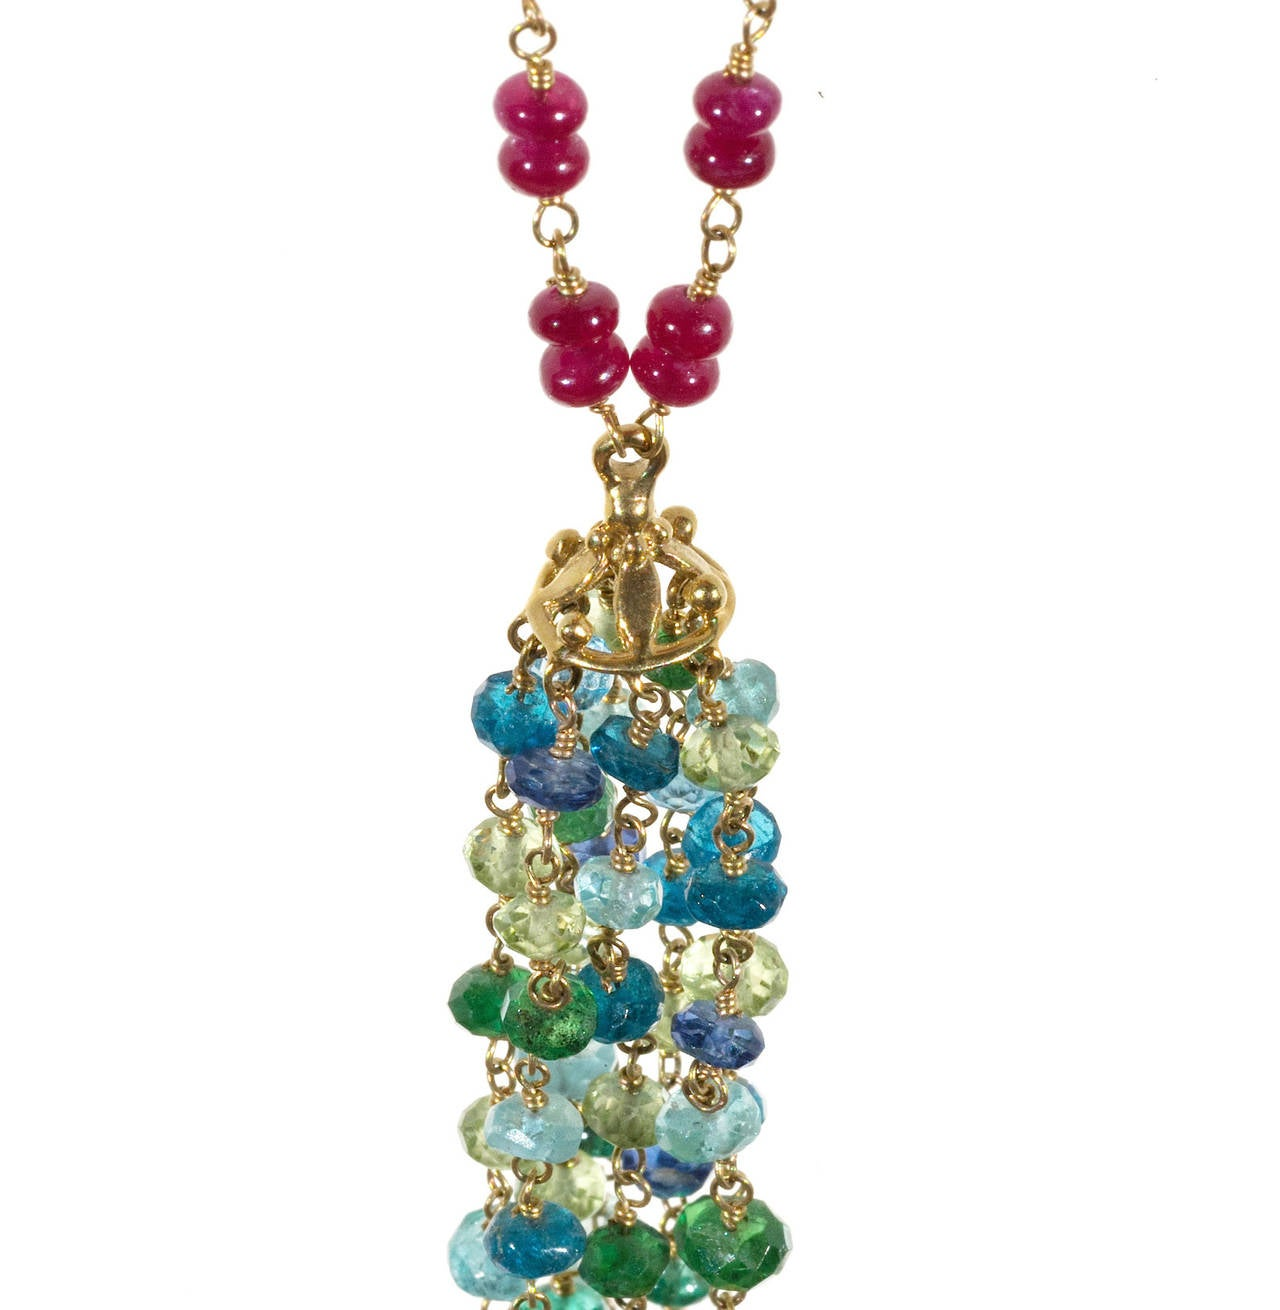 Ruby Aqua Apatite Emerald and Peridot Hand Wired Rondell Bead ...